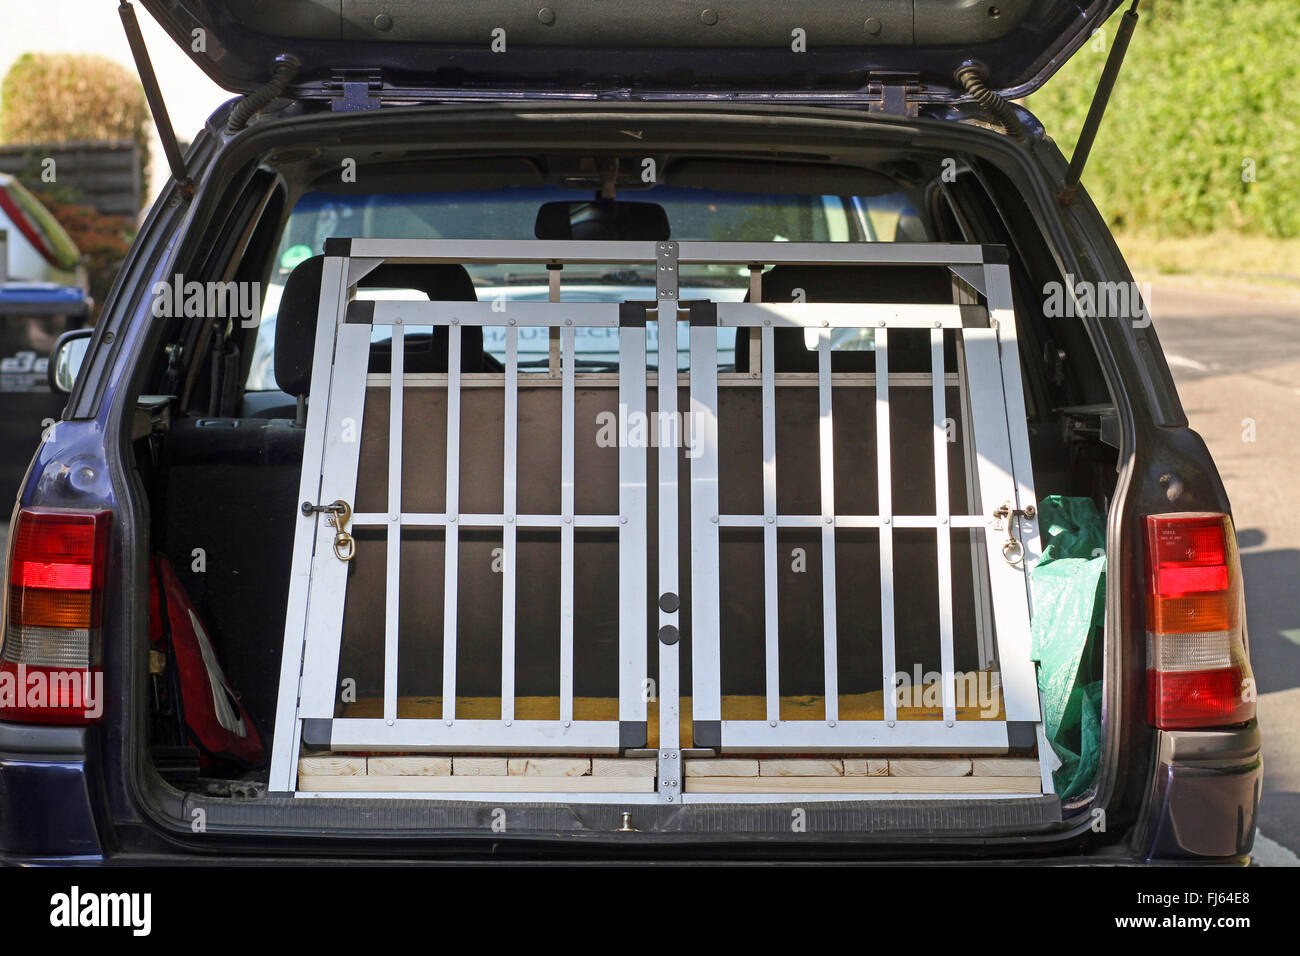 dog transport box in a car boot, Germany - Stock Image